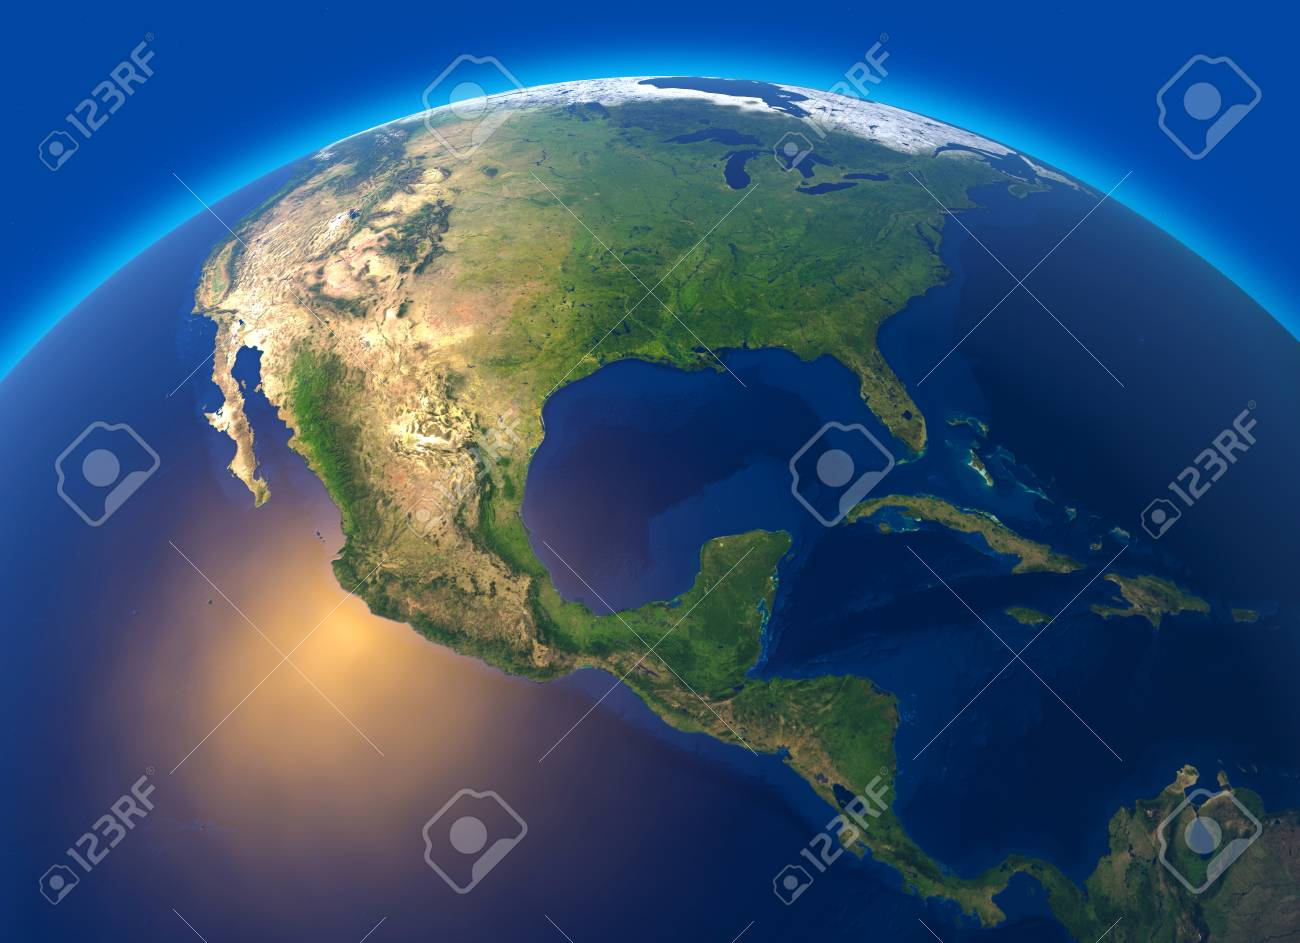 Physical map of the world, satellite view of central America... on geographic map of central america, map map of central america, road map of central america, printable map of central america, world map of central america, satellite view of north america, weather channel central america, political map of central and south america, world atlas of central america, precipitation map of central america, elevation of central america, google earth of central america, detailed map of central america, google map of central and south america, restaurants of central america, blank map of central america, outline map of central america, full page map of south america, coordinates of central america, green map of central america,